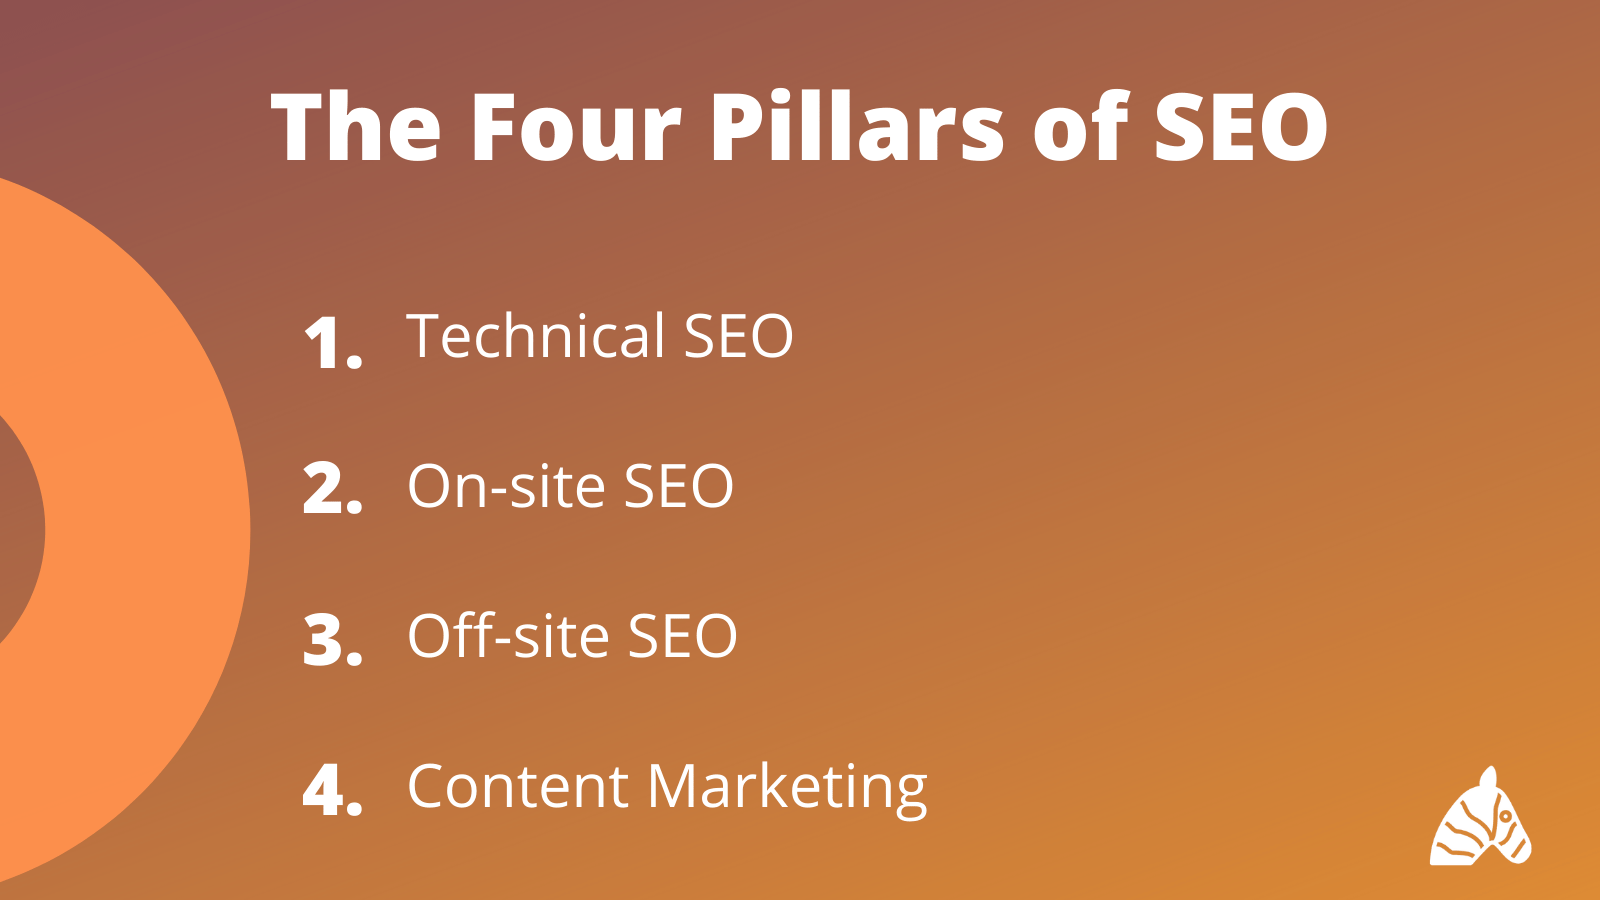 the four pillars of seo infographic